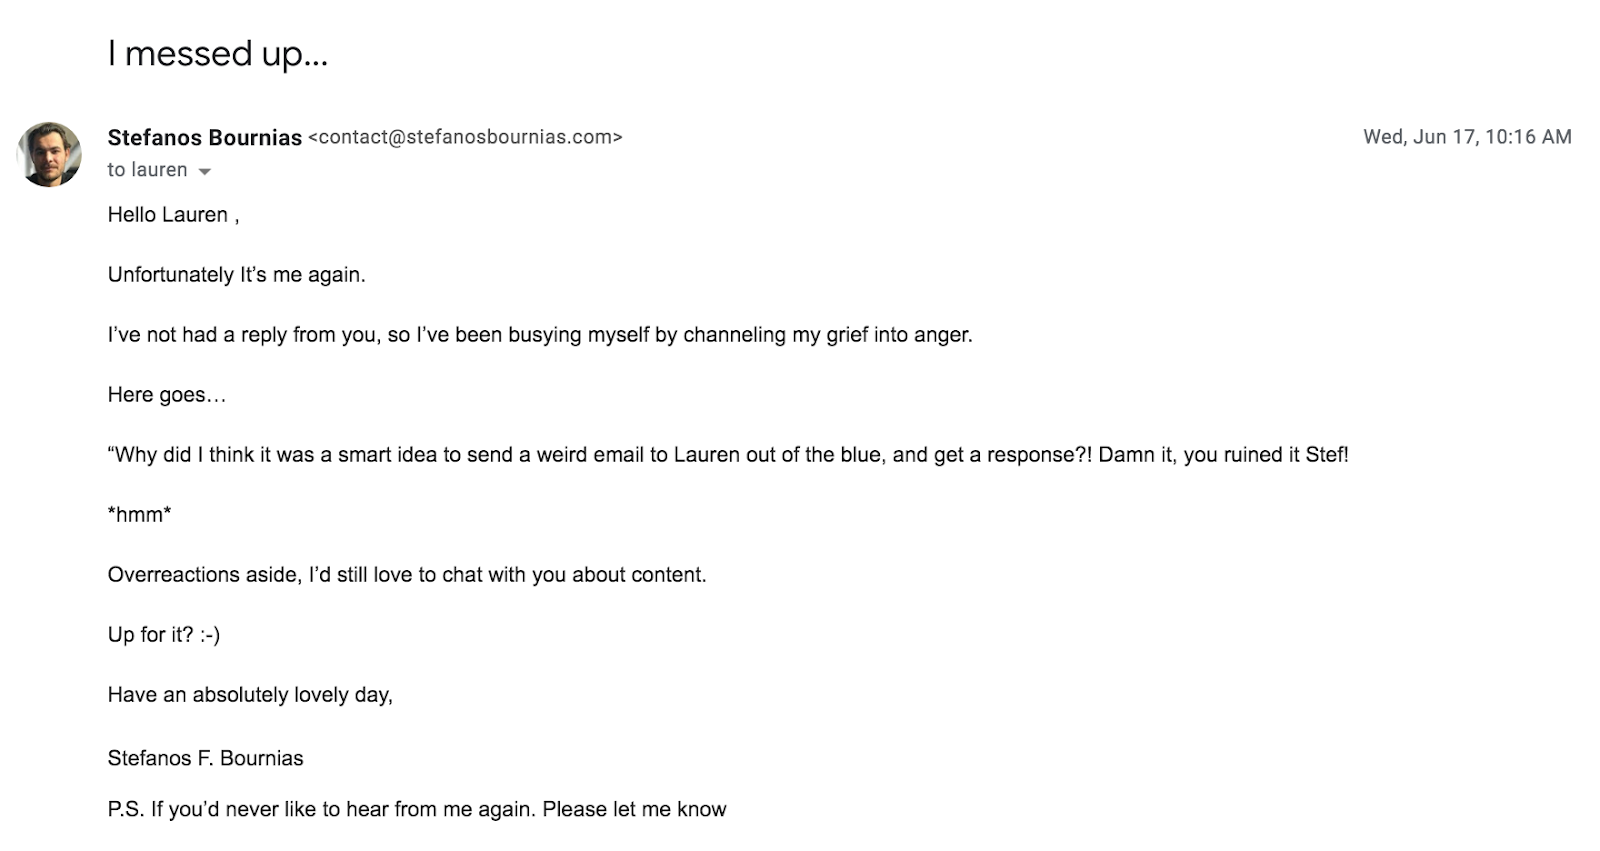 second follow-up email to Lauren